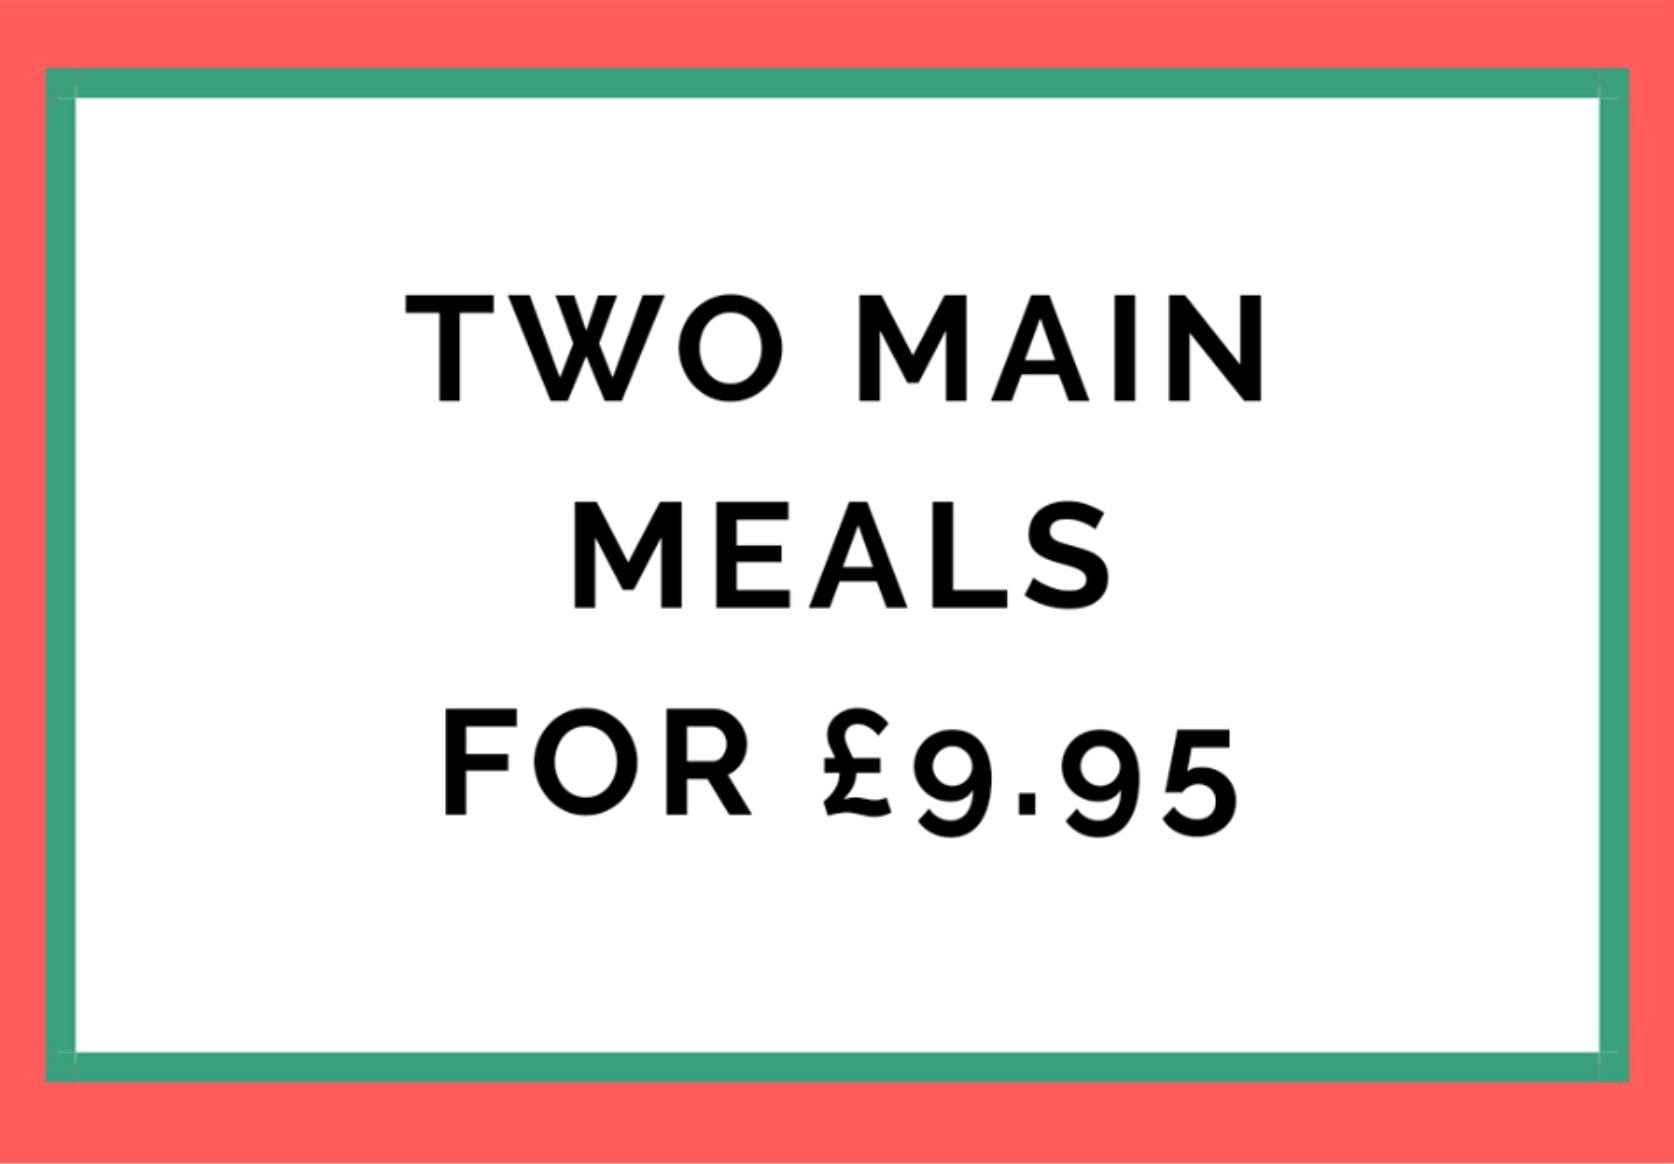 Two meals for £9.95 at the Strawberry Gardens Fleetwood